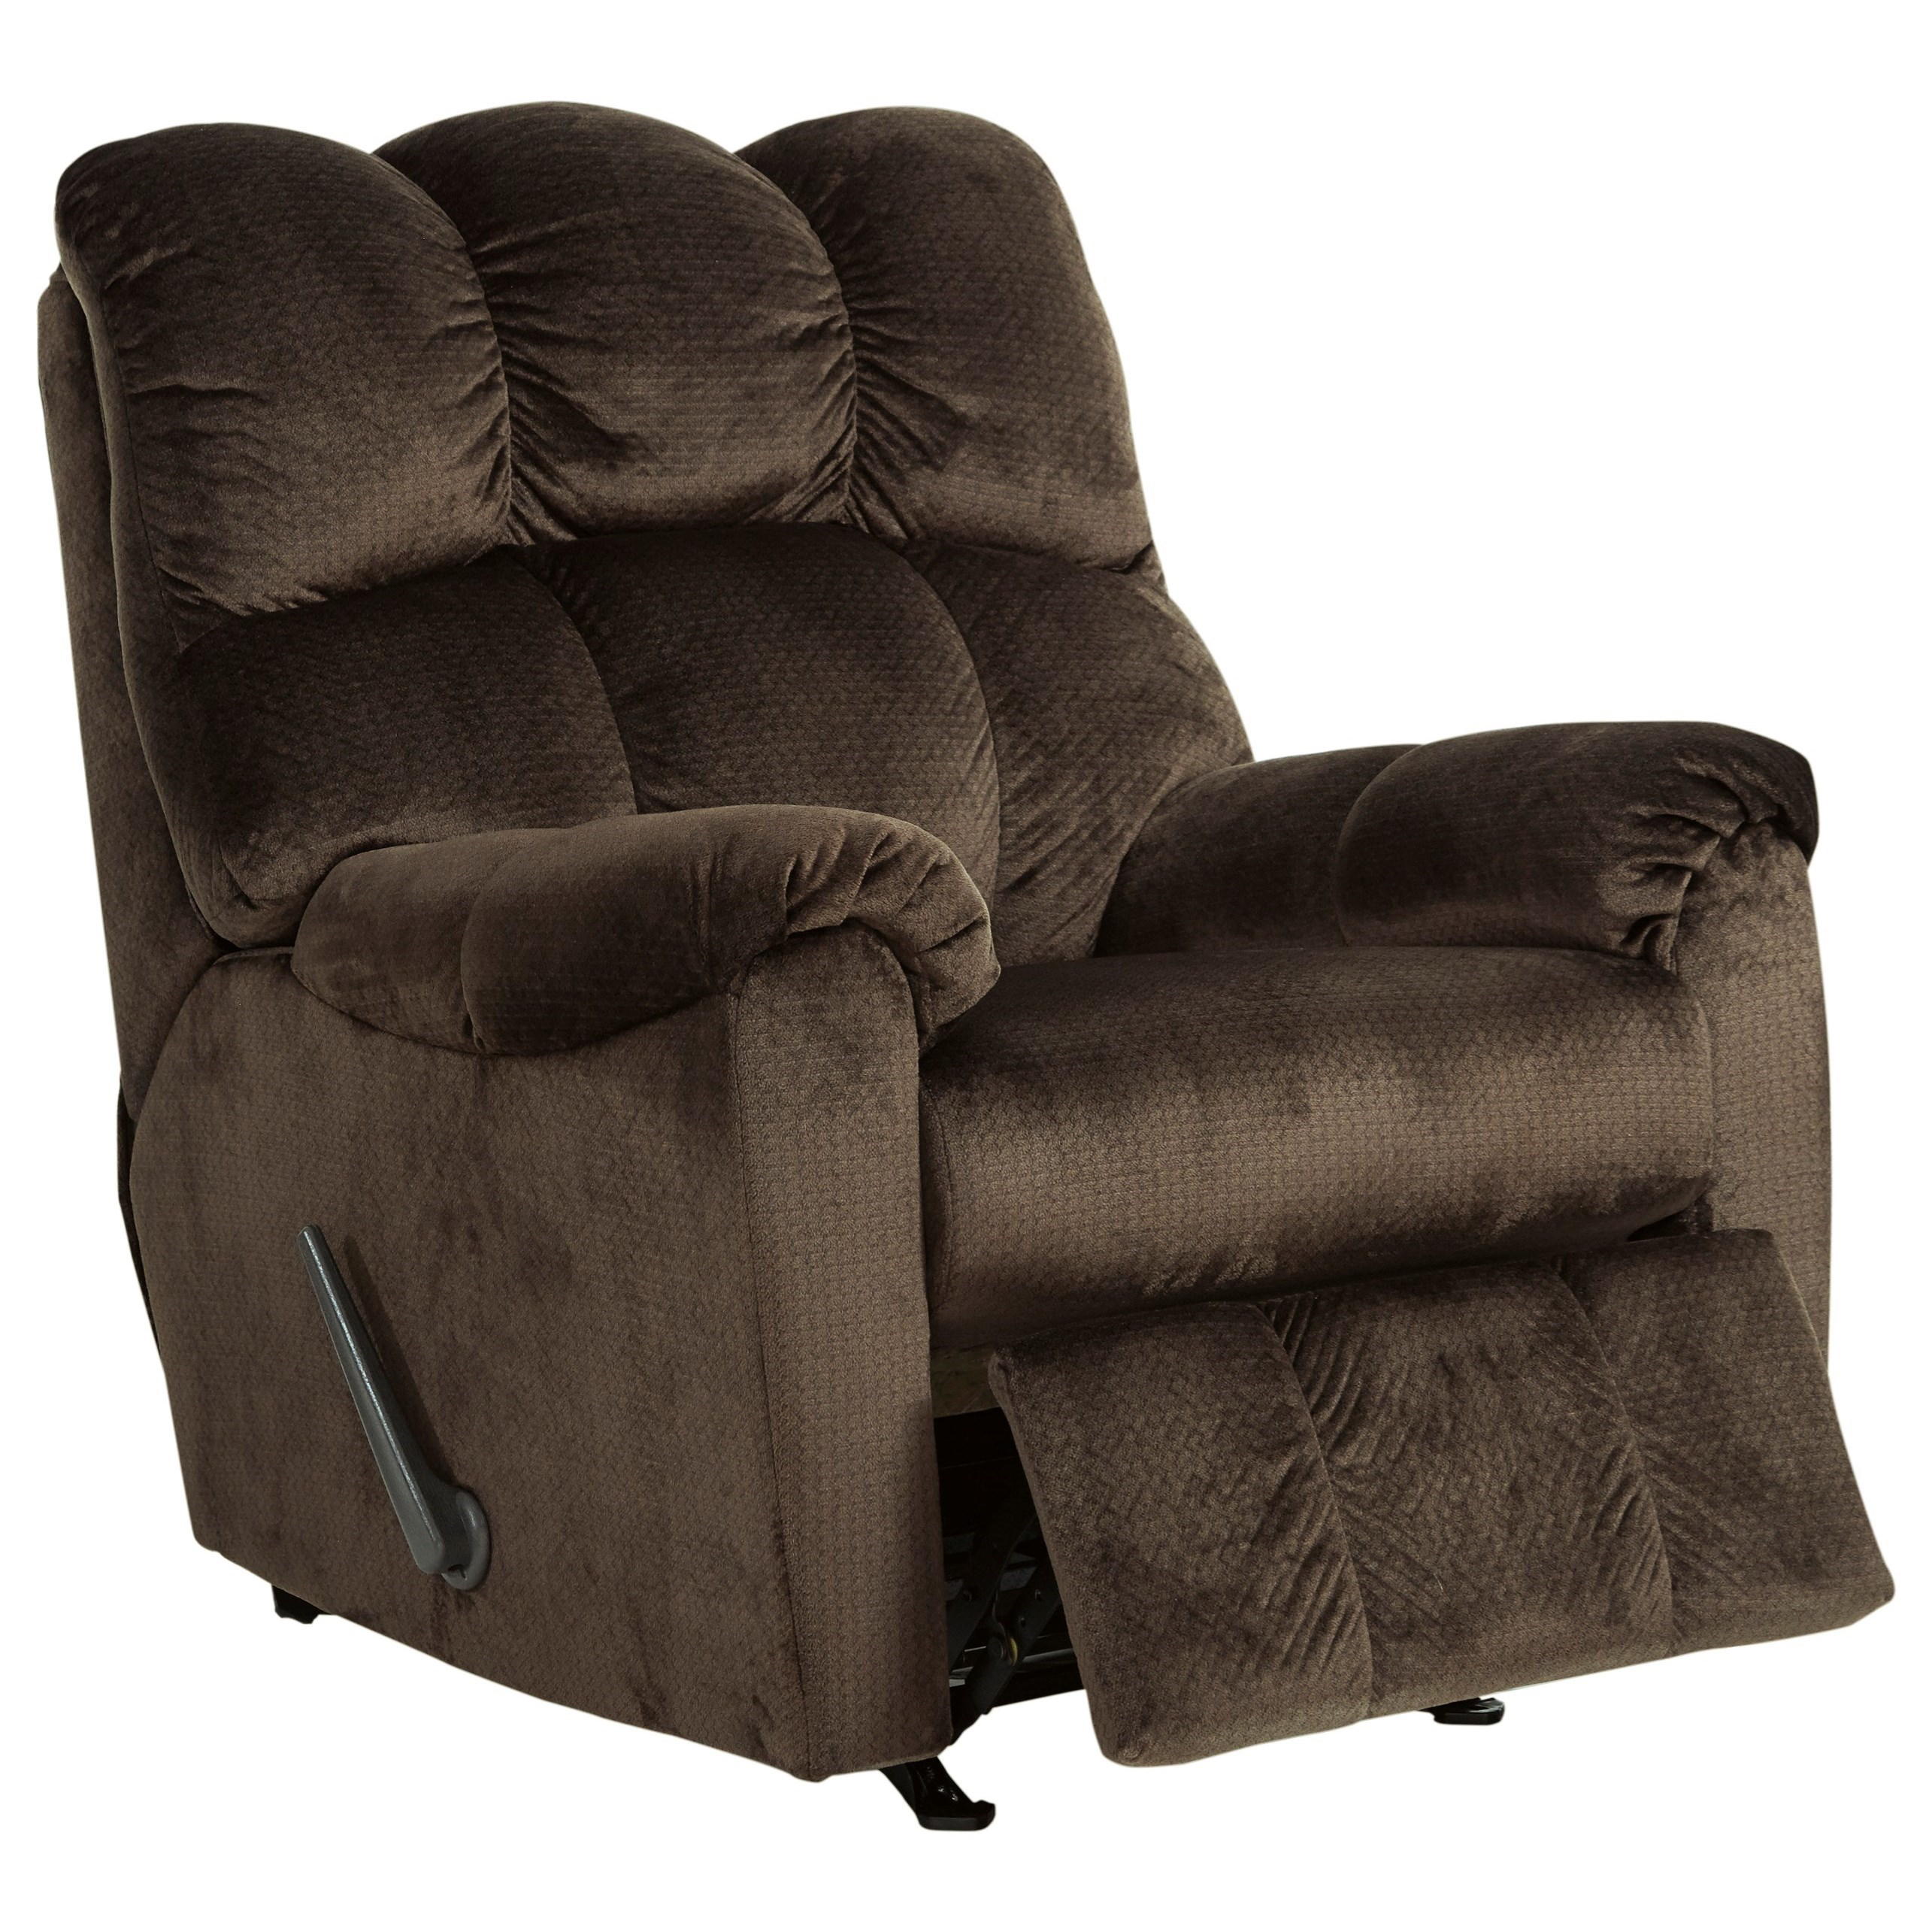 Foxfield Rocker Recliner by Signature Design by Ashley at Beck's Furniture